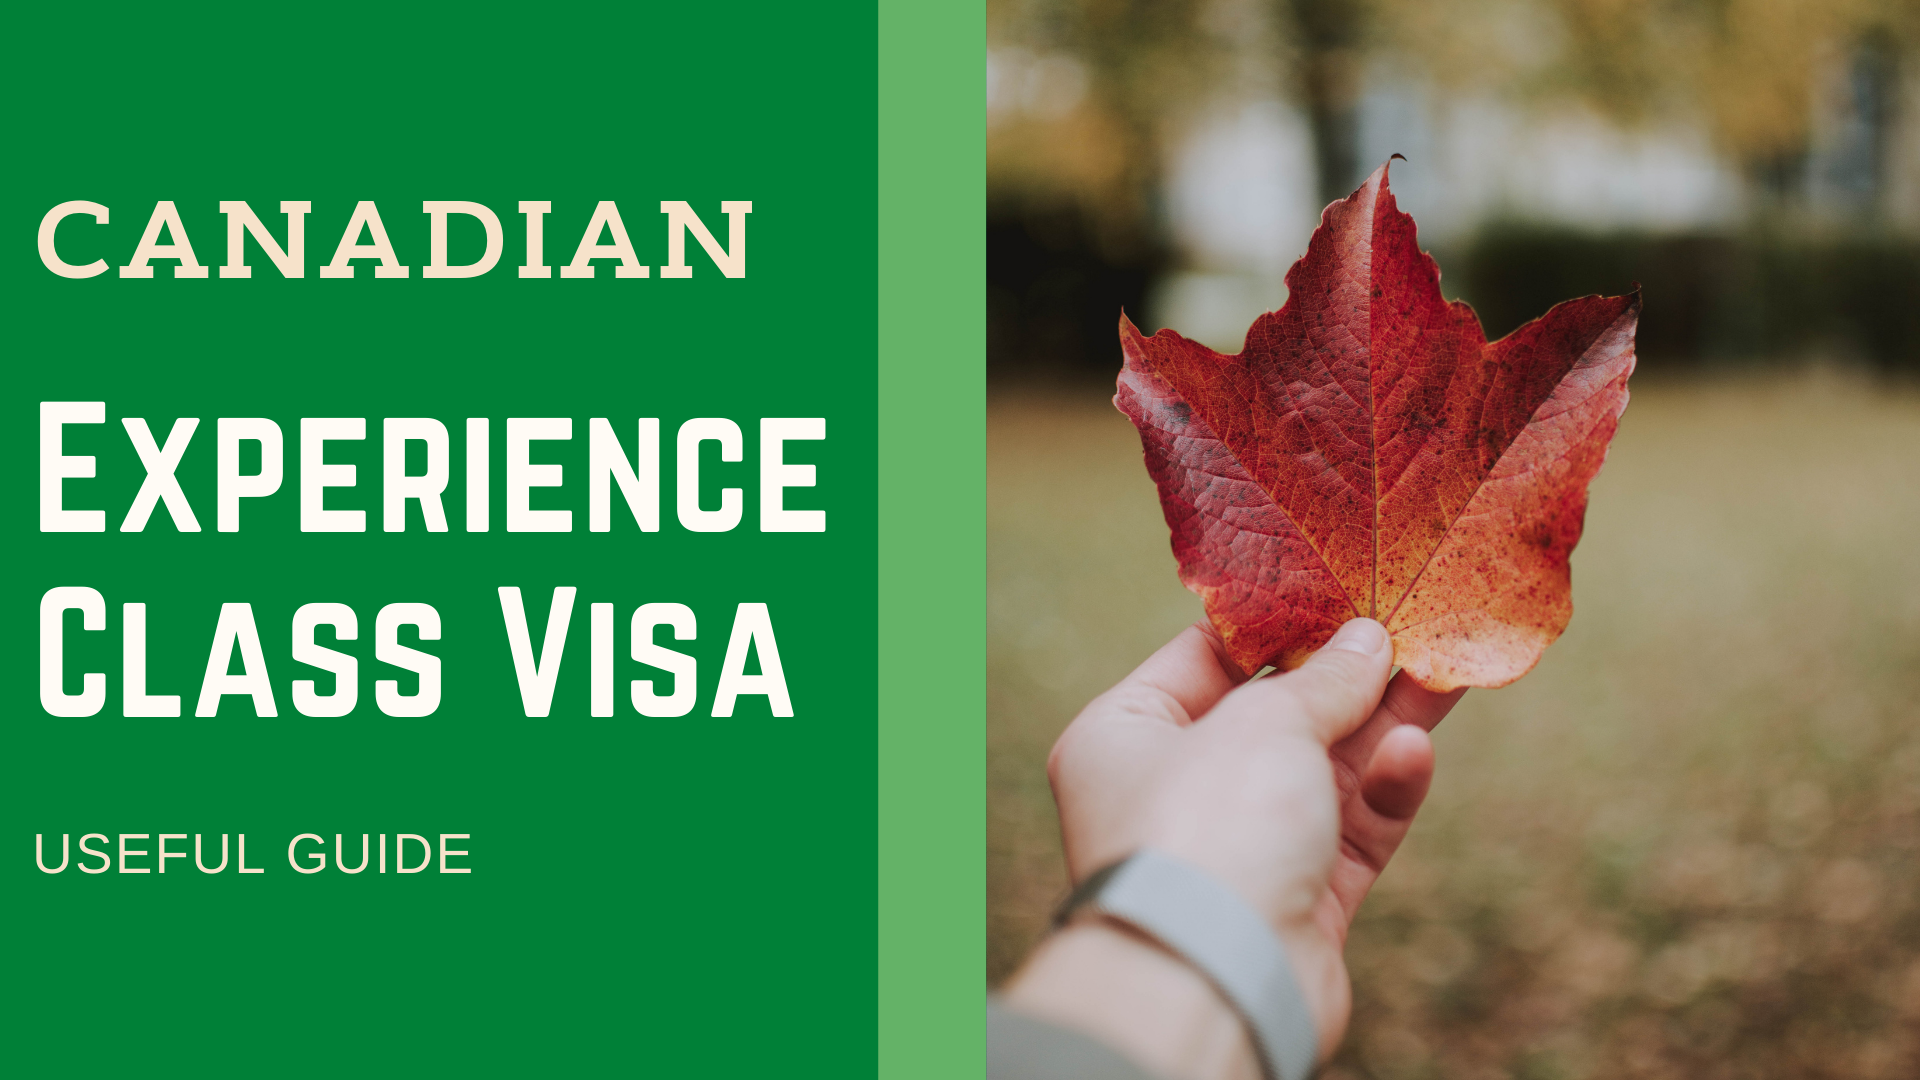 Lay hands on the Canadian Experience Class Visa